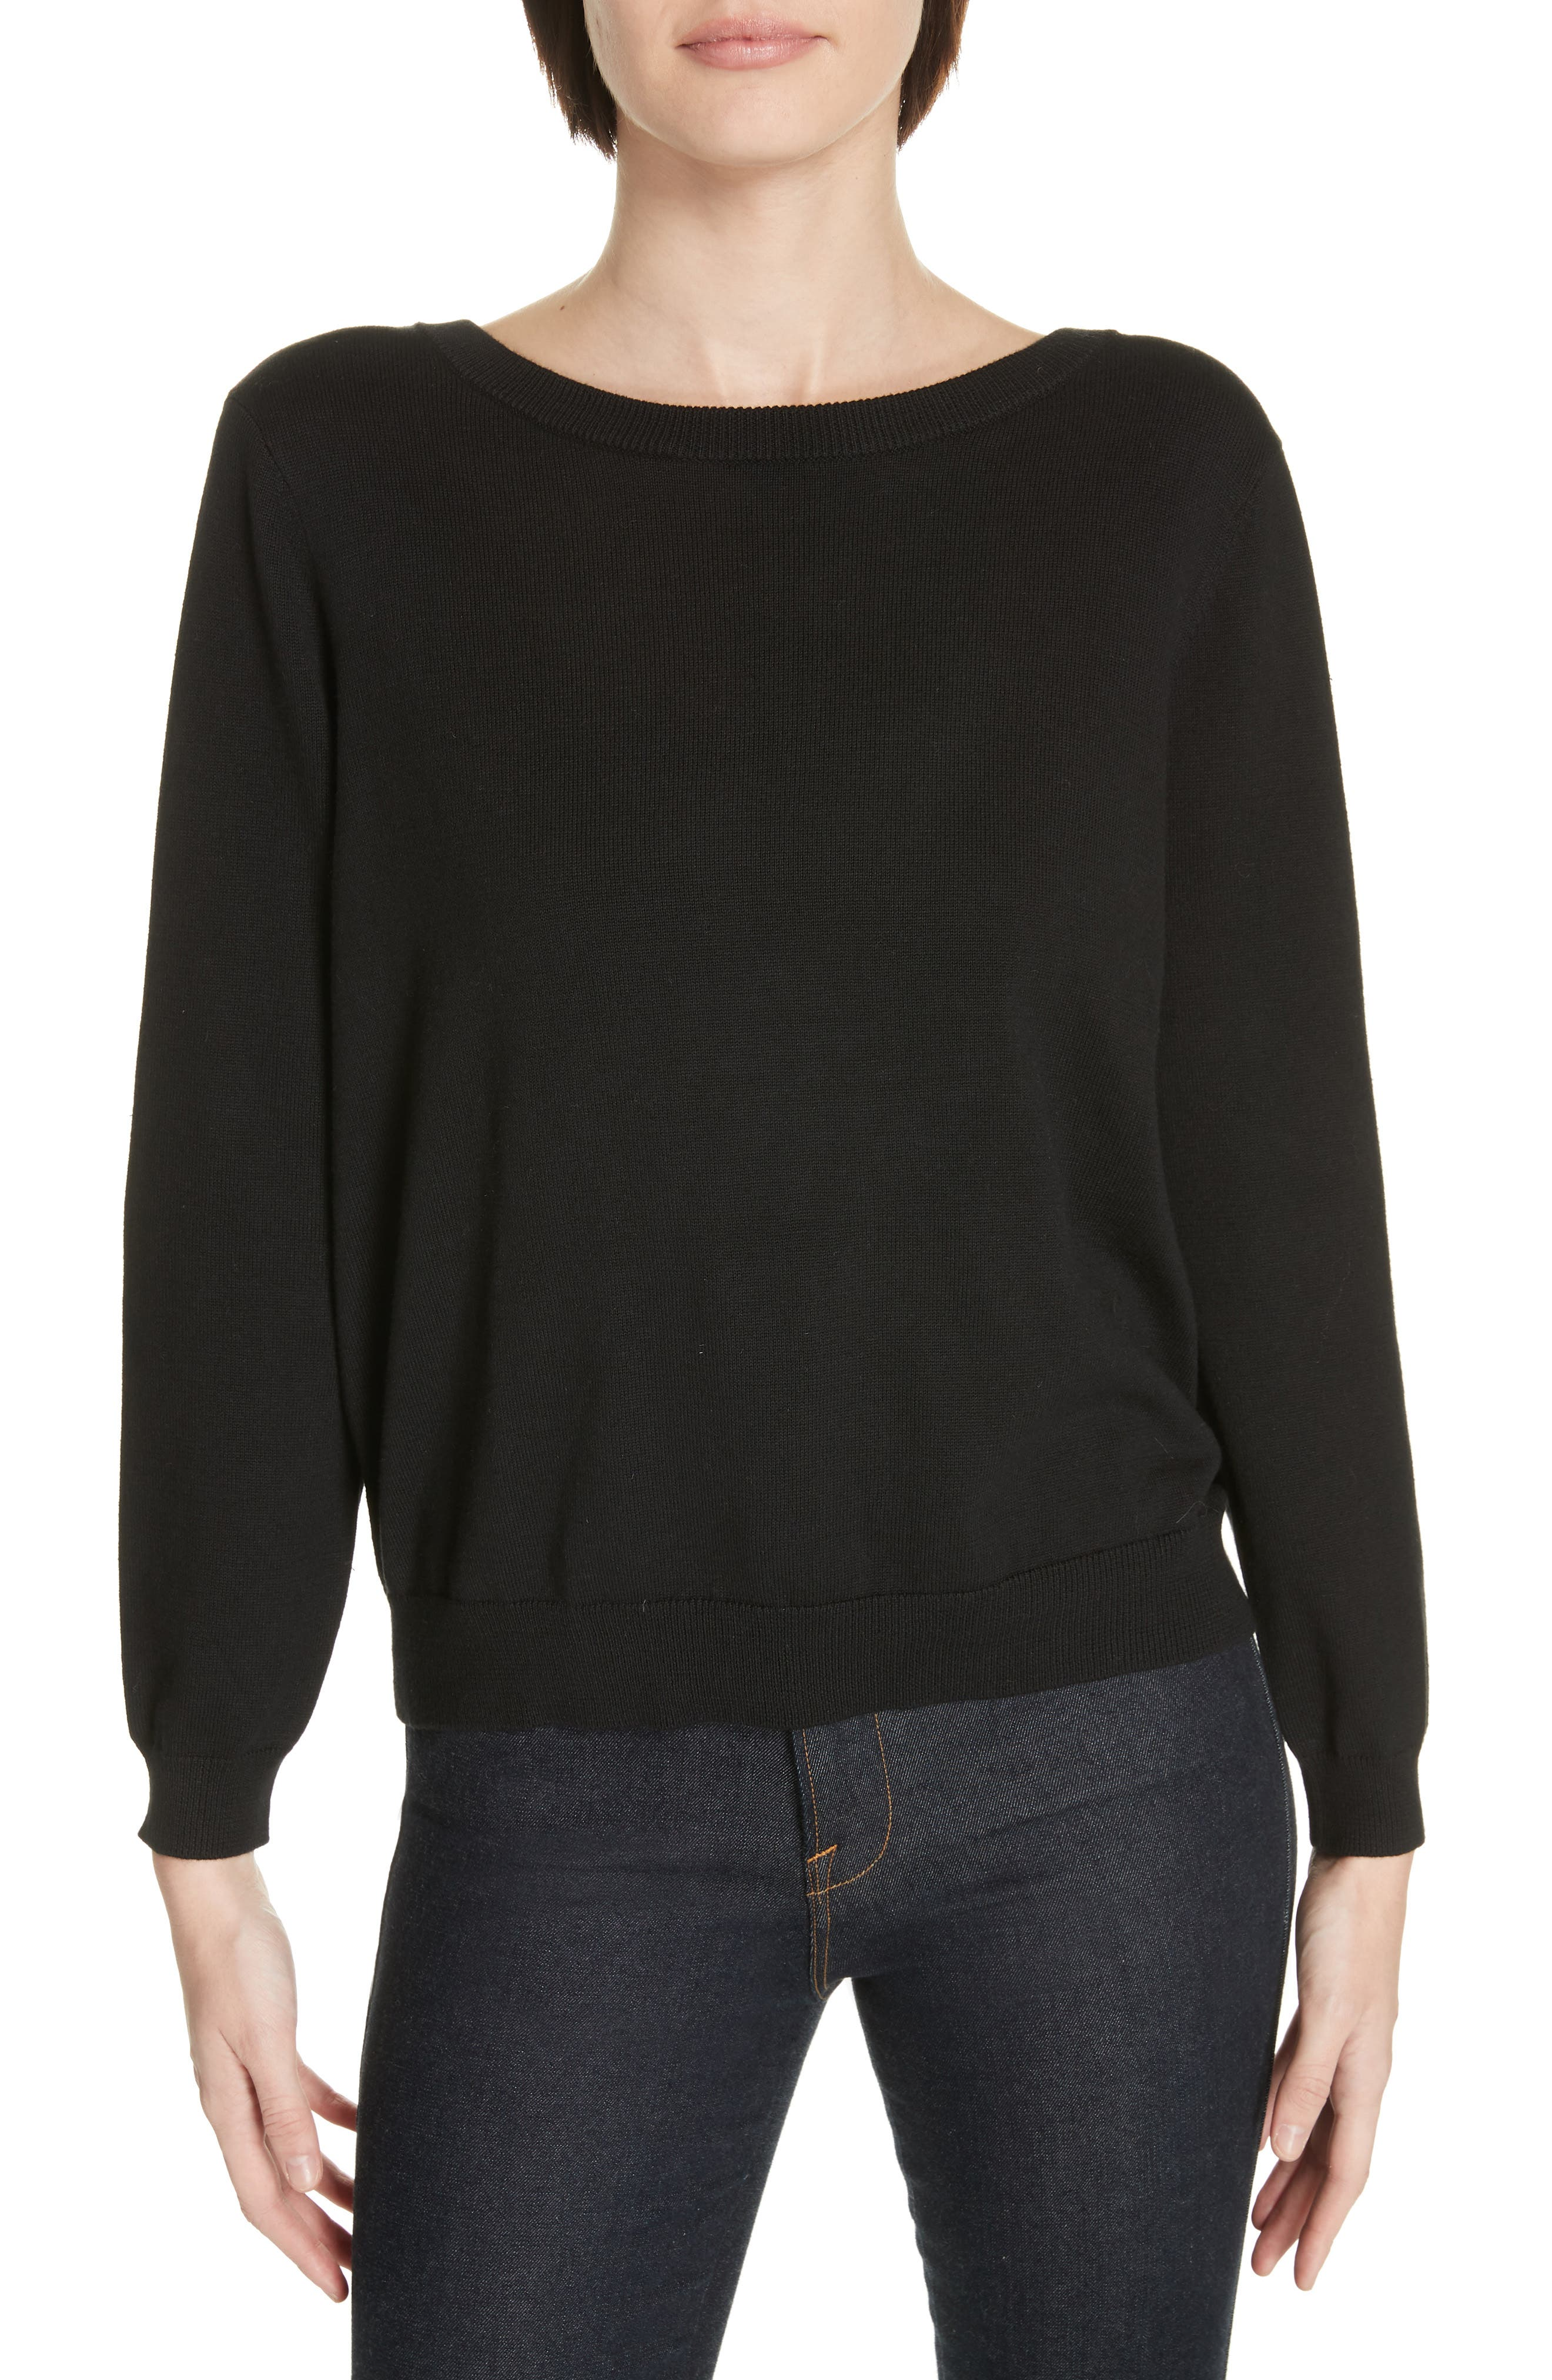 7e9b9b05 Women's Ba&Sh Clothing | Nordstrom